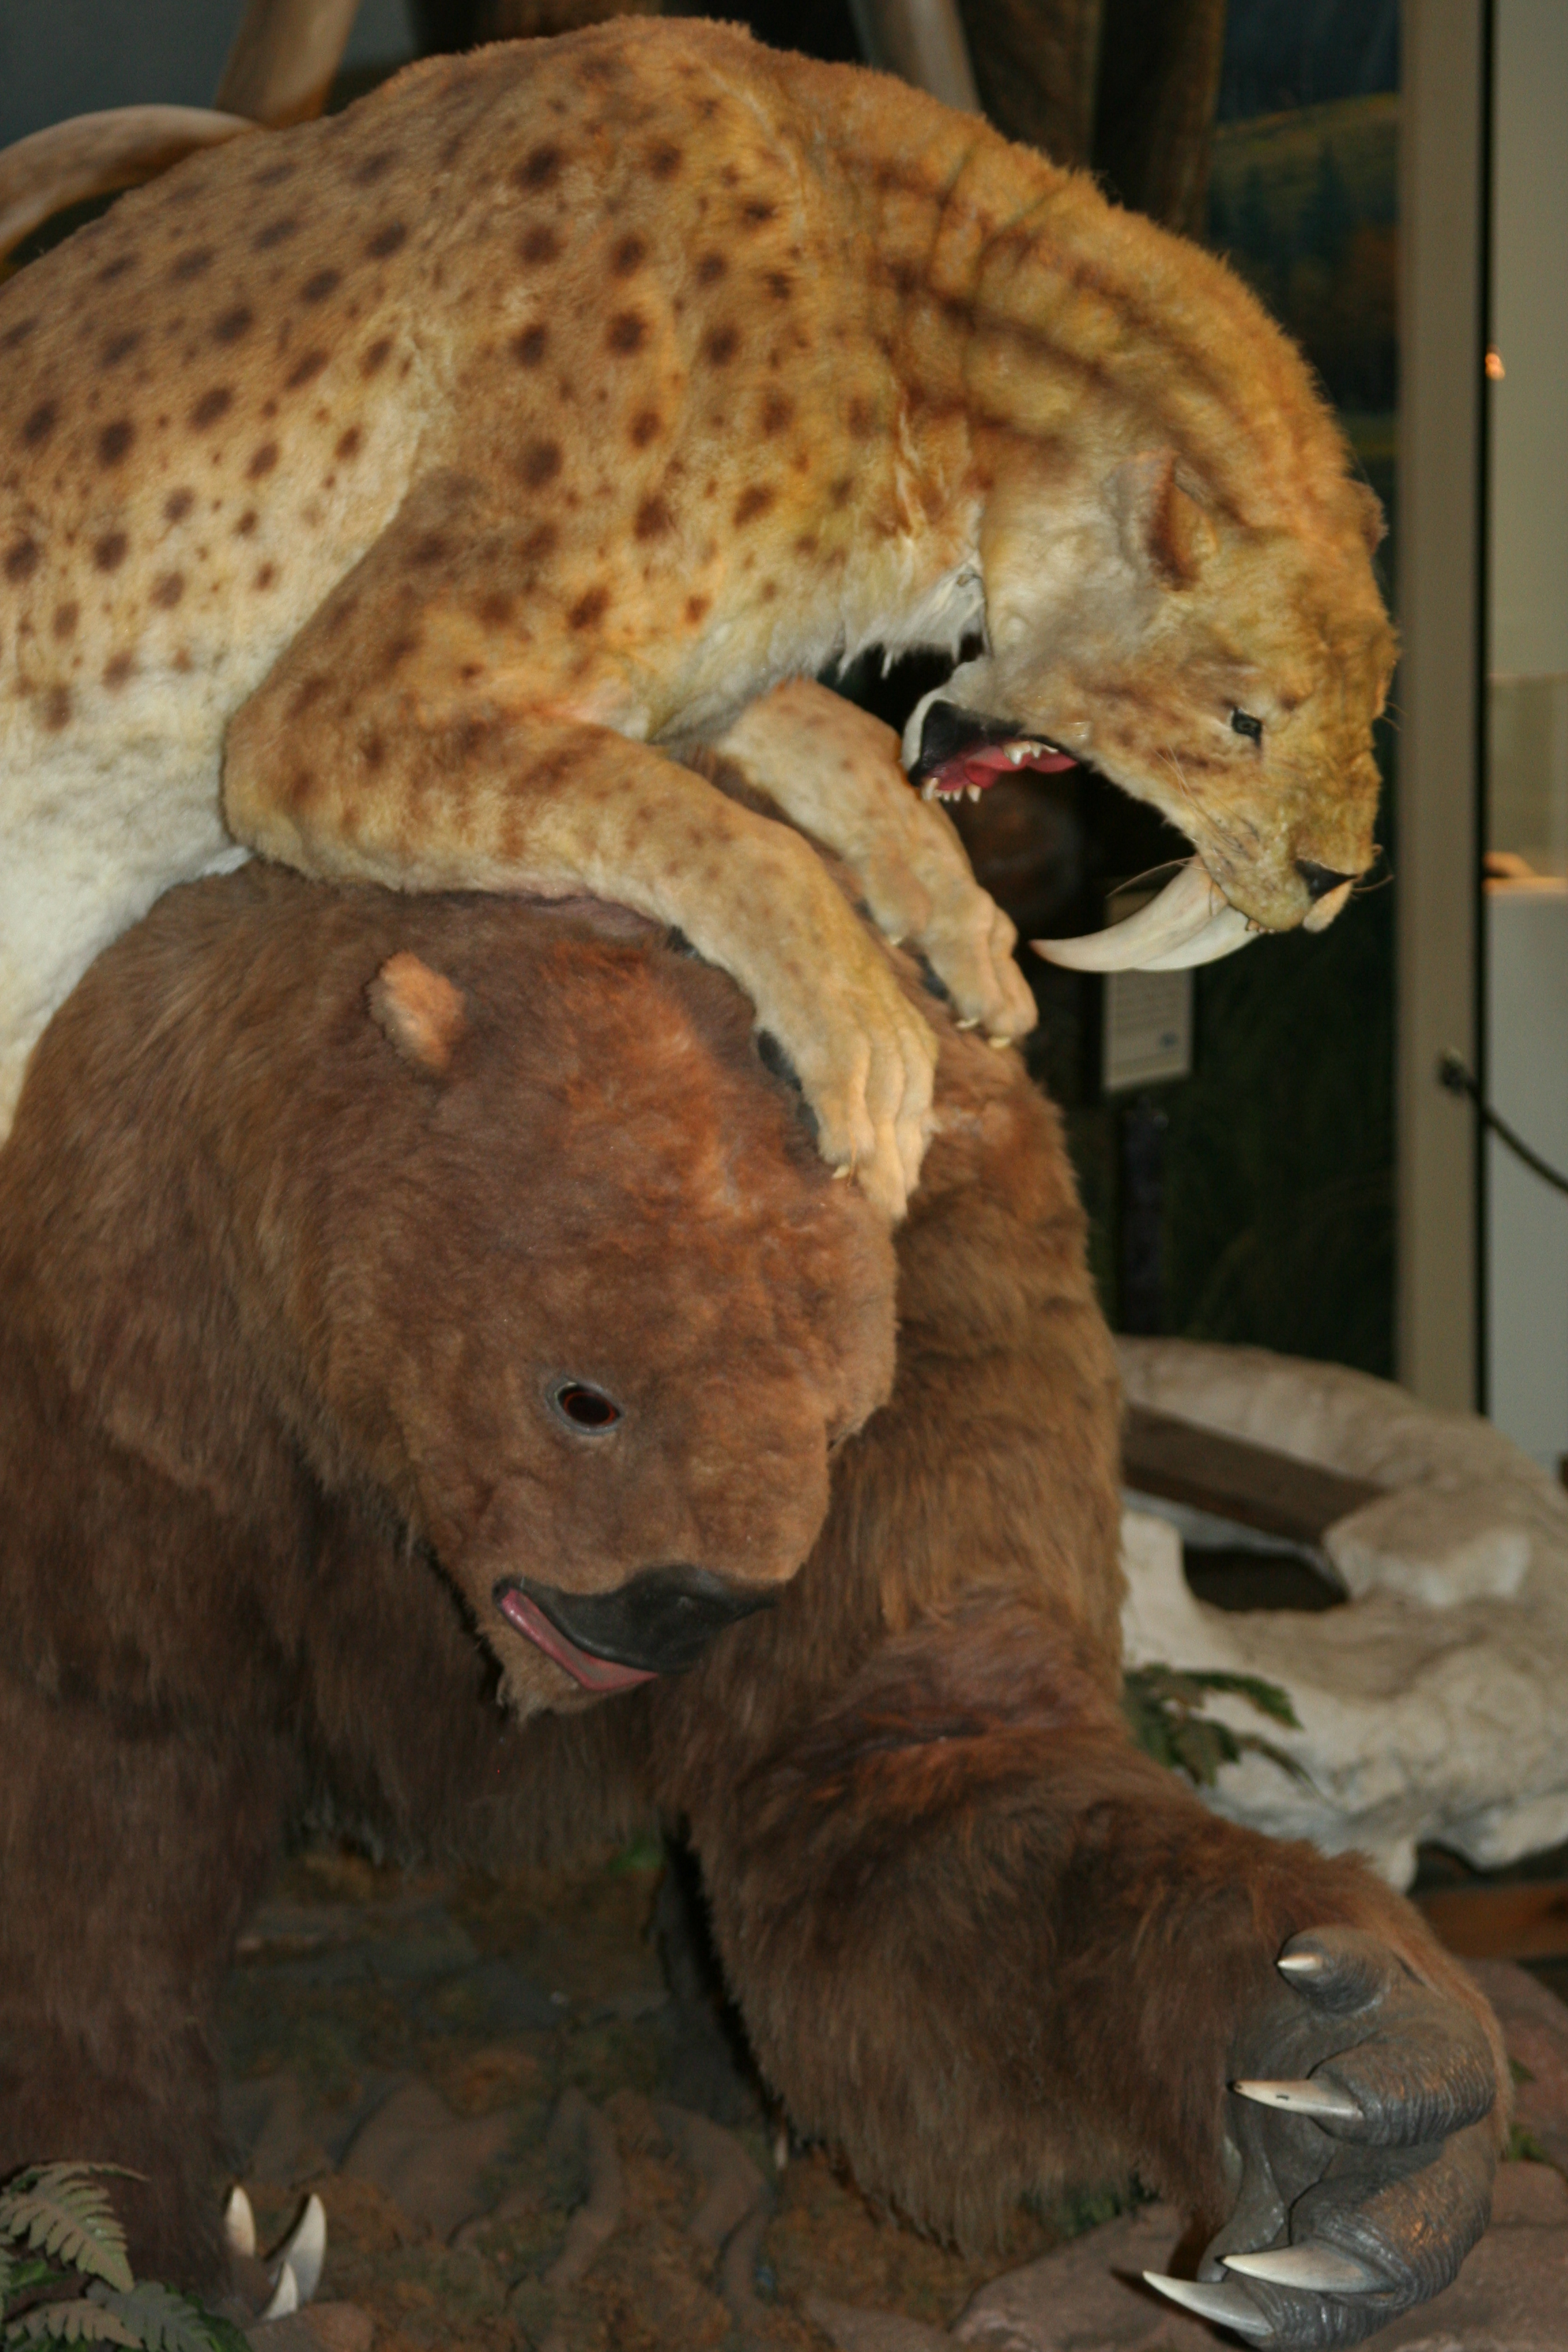 Saber Tooth Tiger attacks Ground Sloth at Page Museum ...